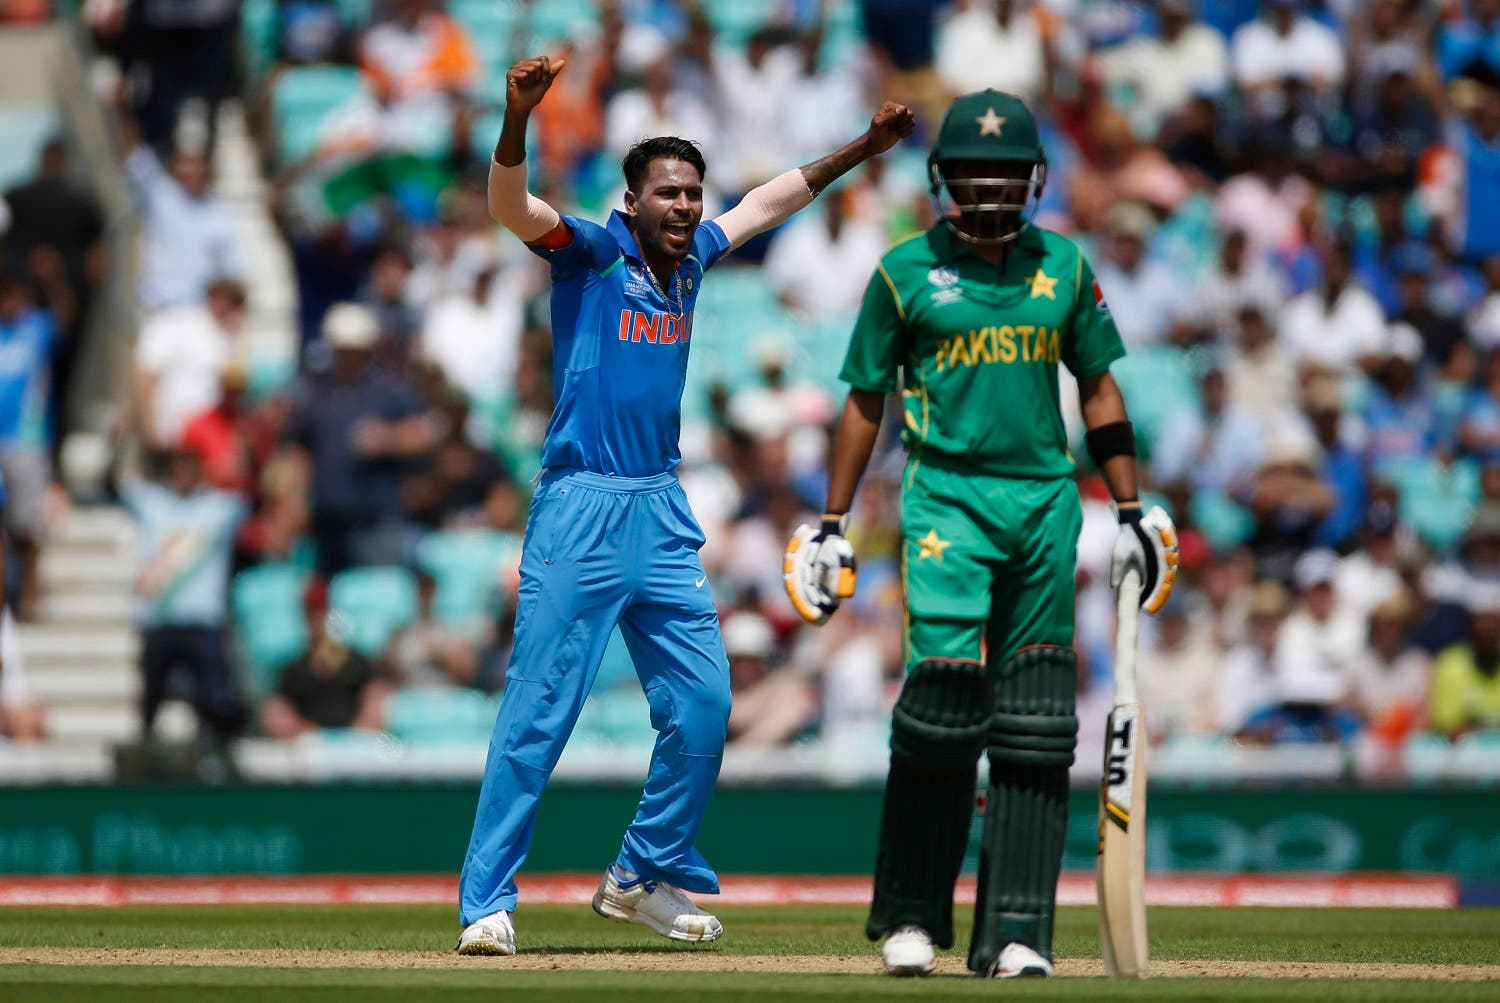 India's Hardik Pandya celebrates taking the wicket of Pakistan's Fakhar Zaman in the 2017 ICC Champions Trophy Final on June 18, 2017. (Reuters)